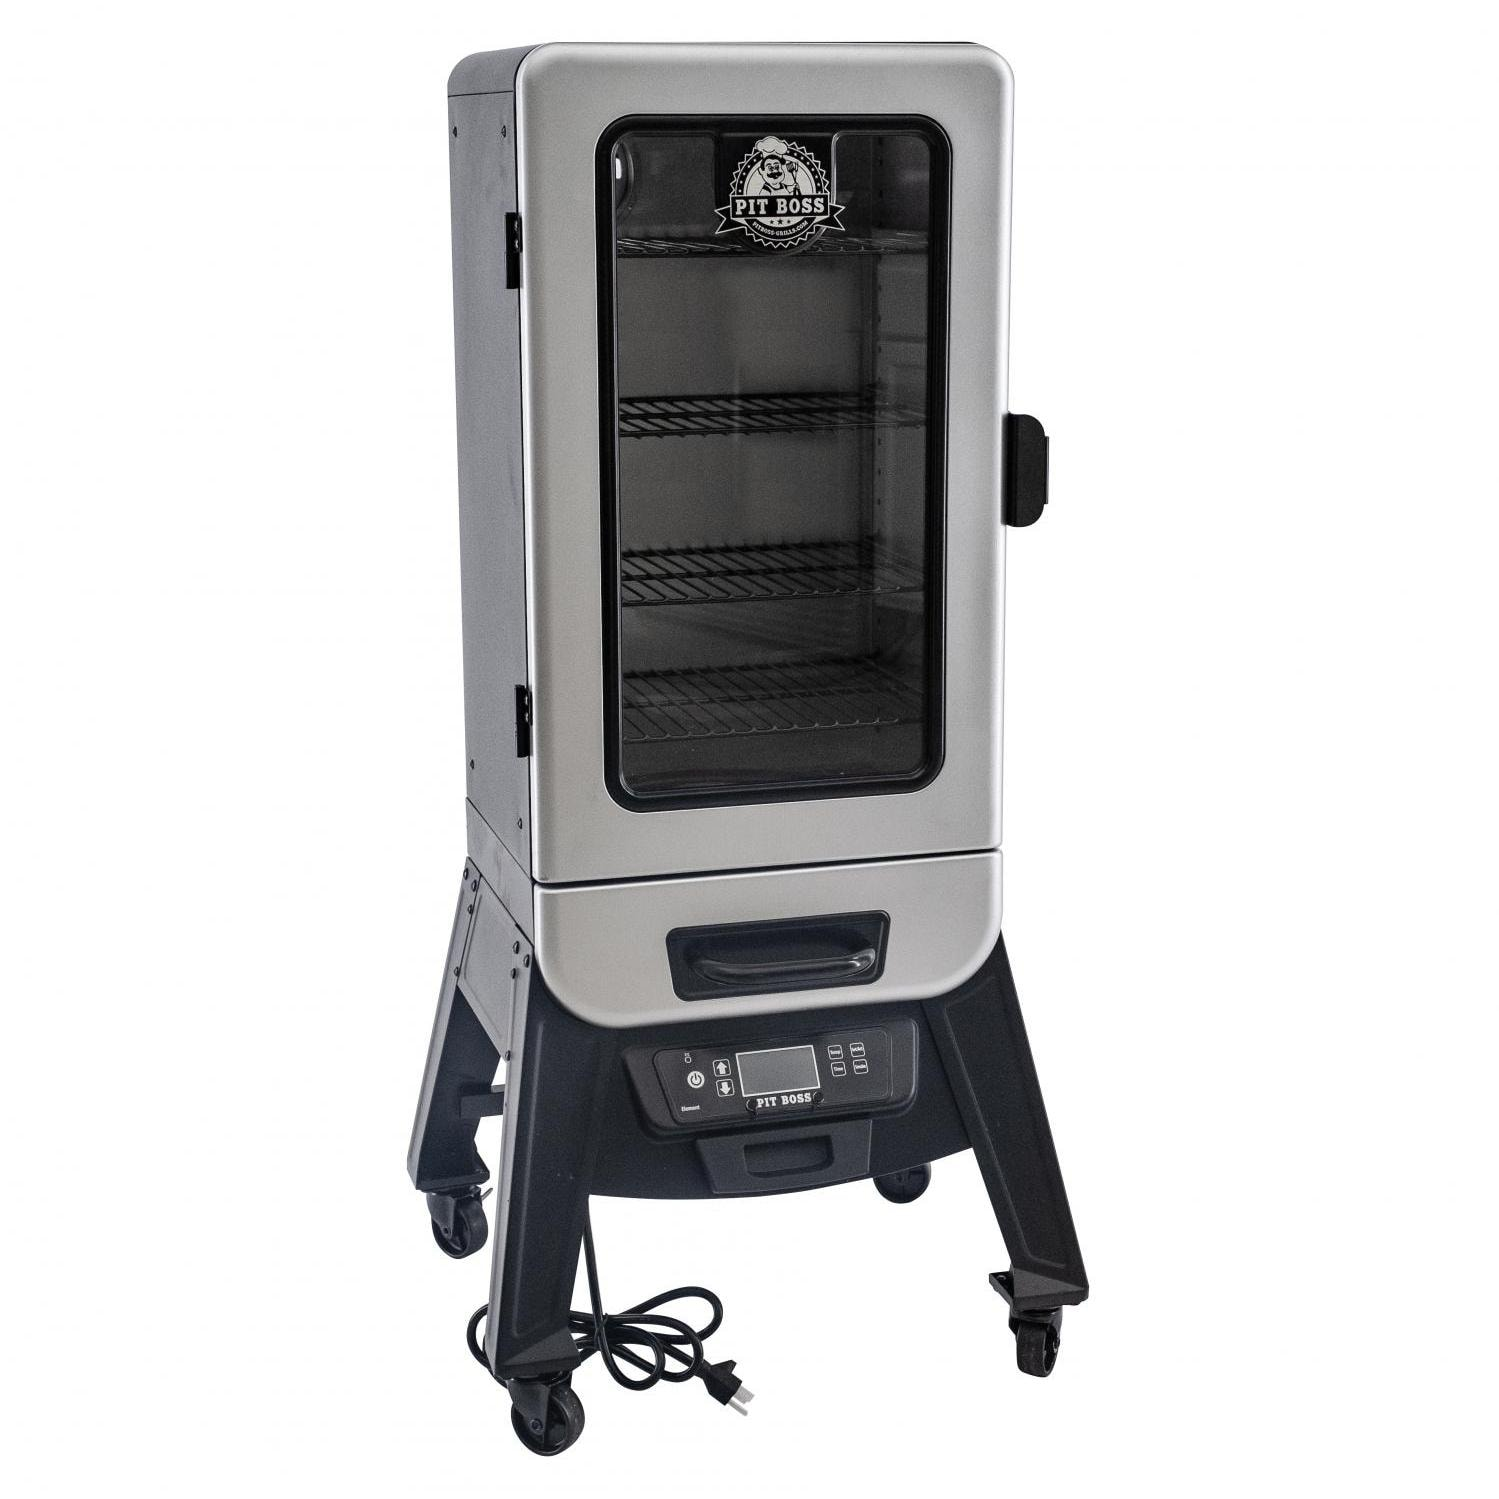 Pit Boss  77232 Silver Star 3 Series 21 inch Vertical Digital Electric Smoker with Window